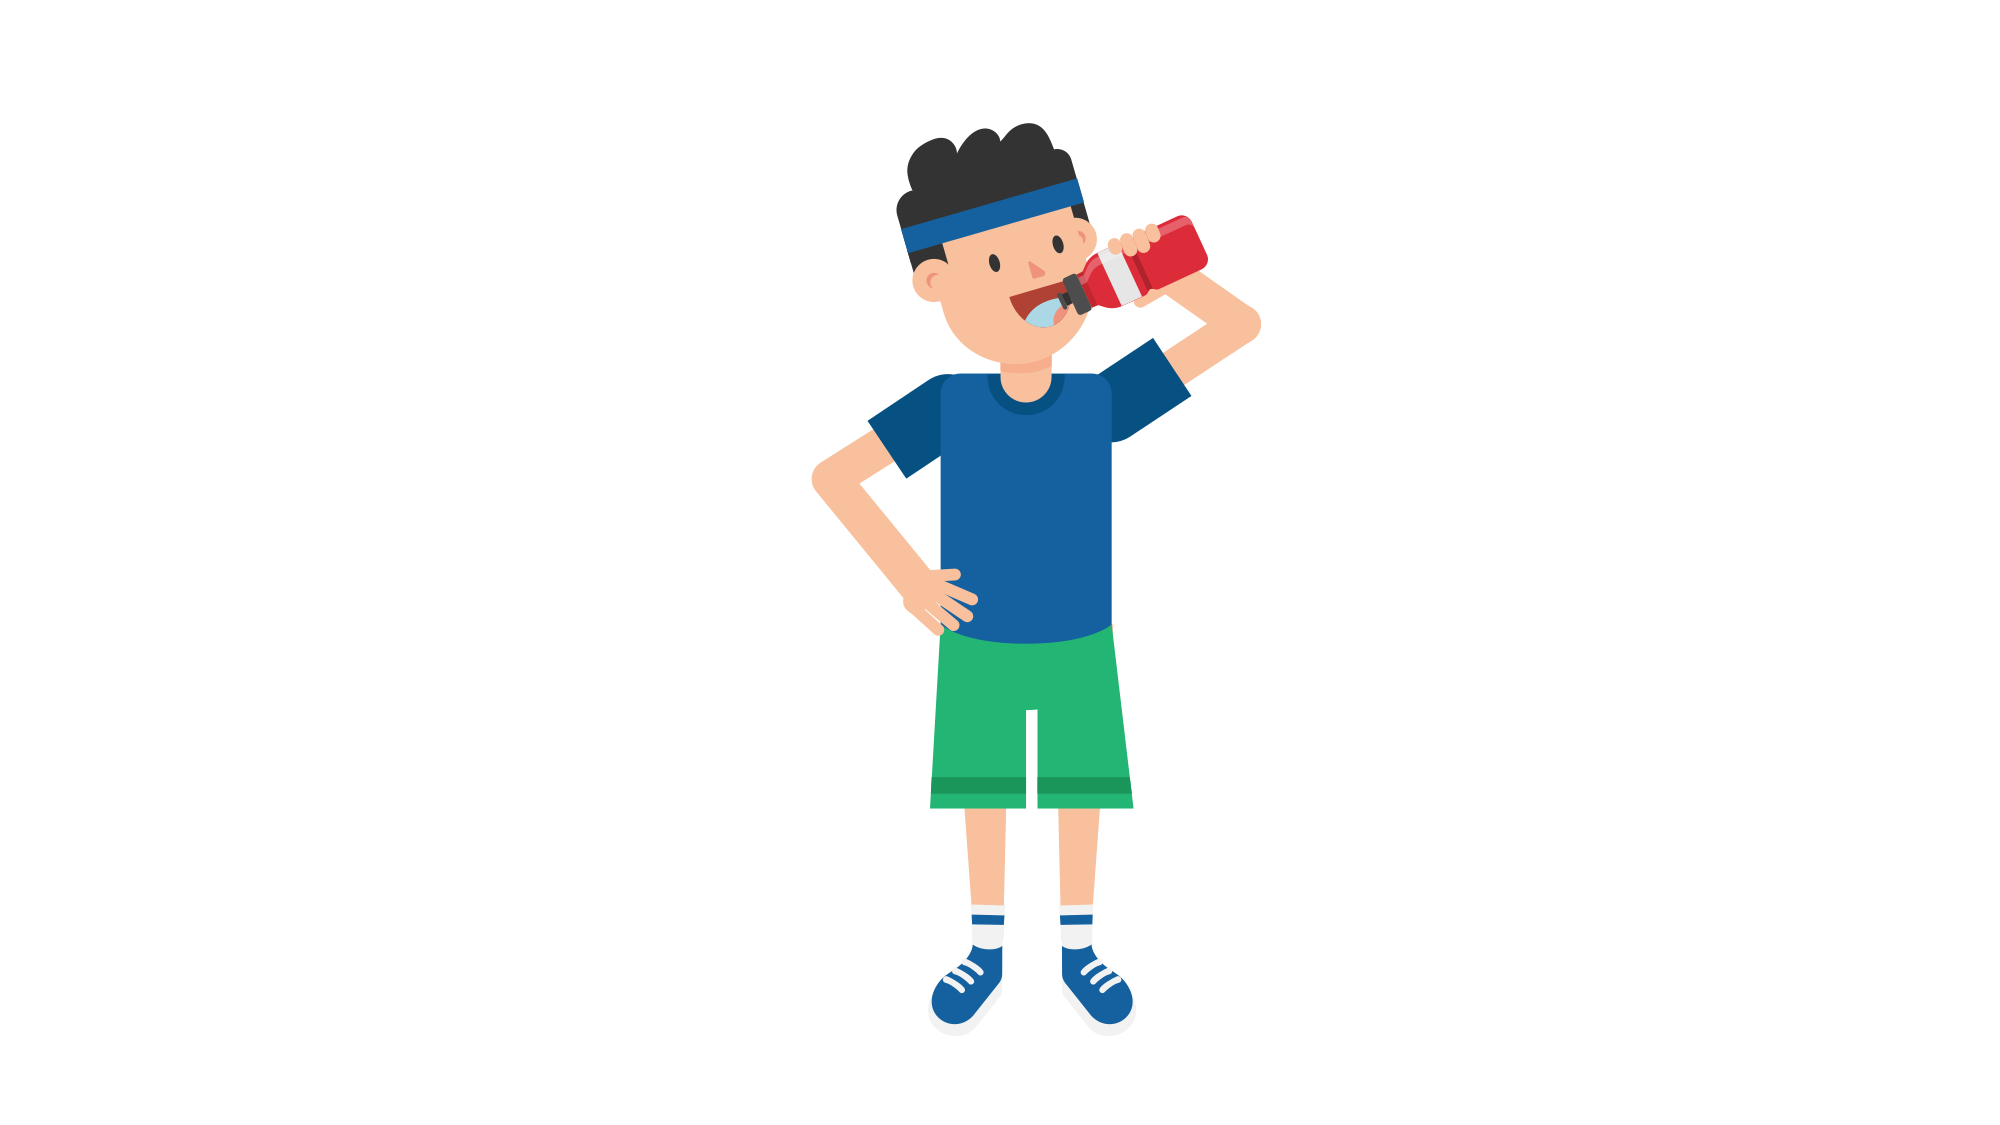 File man drinking cartoon. Water clipart potable water